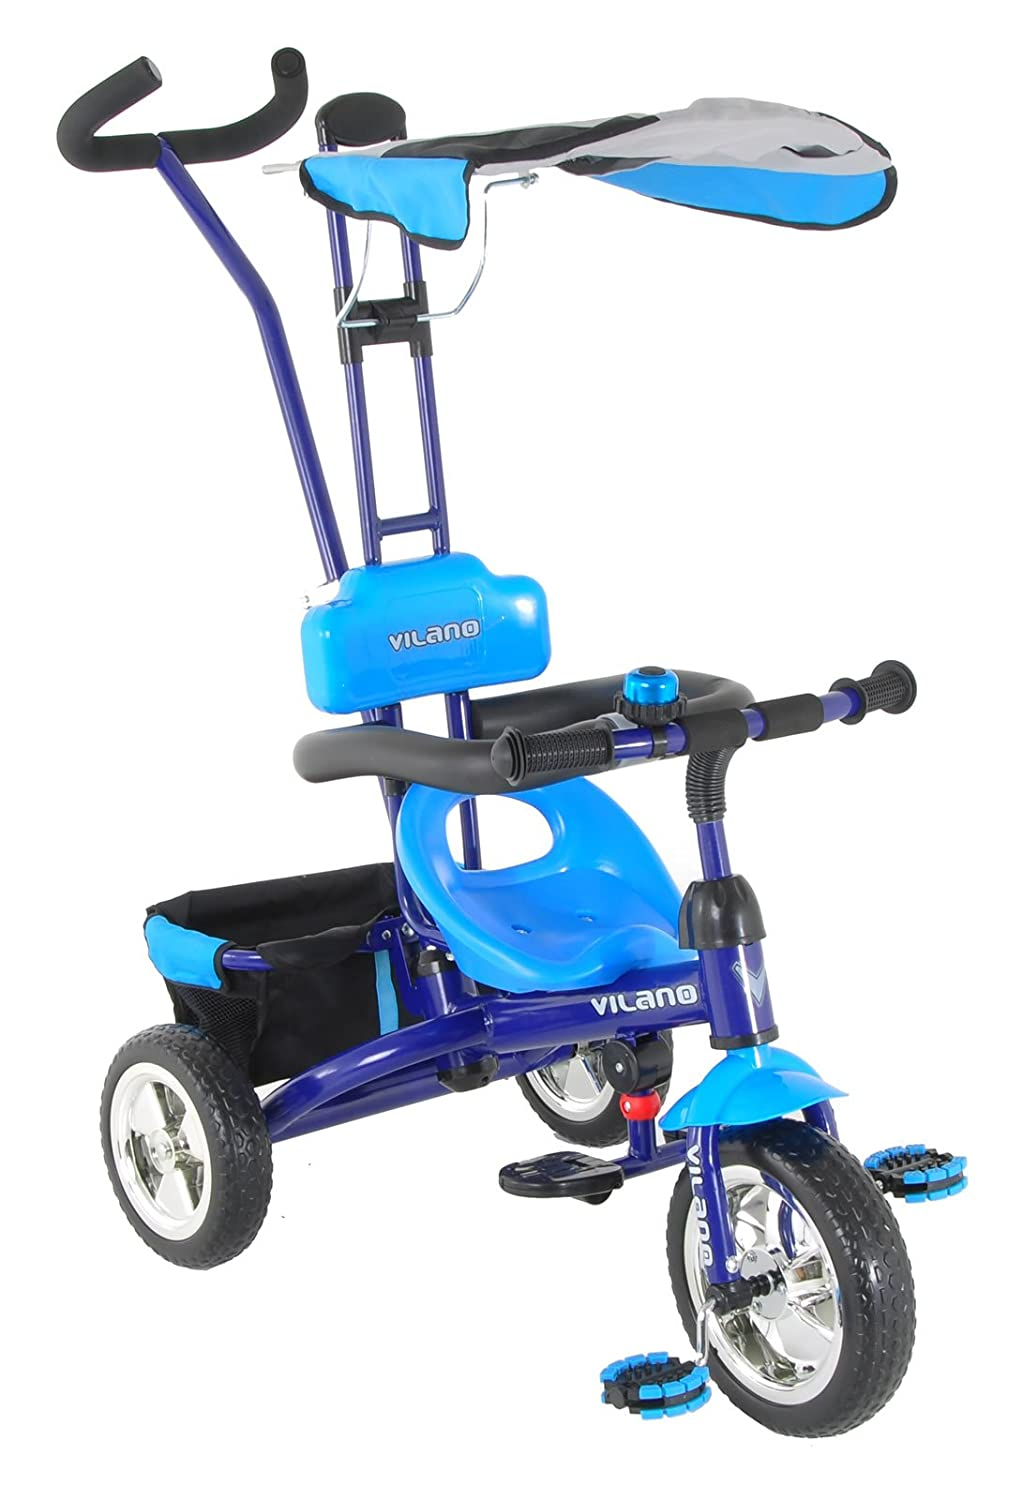 Vilano 3 in 1 Tricycle & Learn to Ride Trike